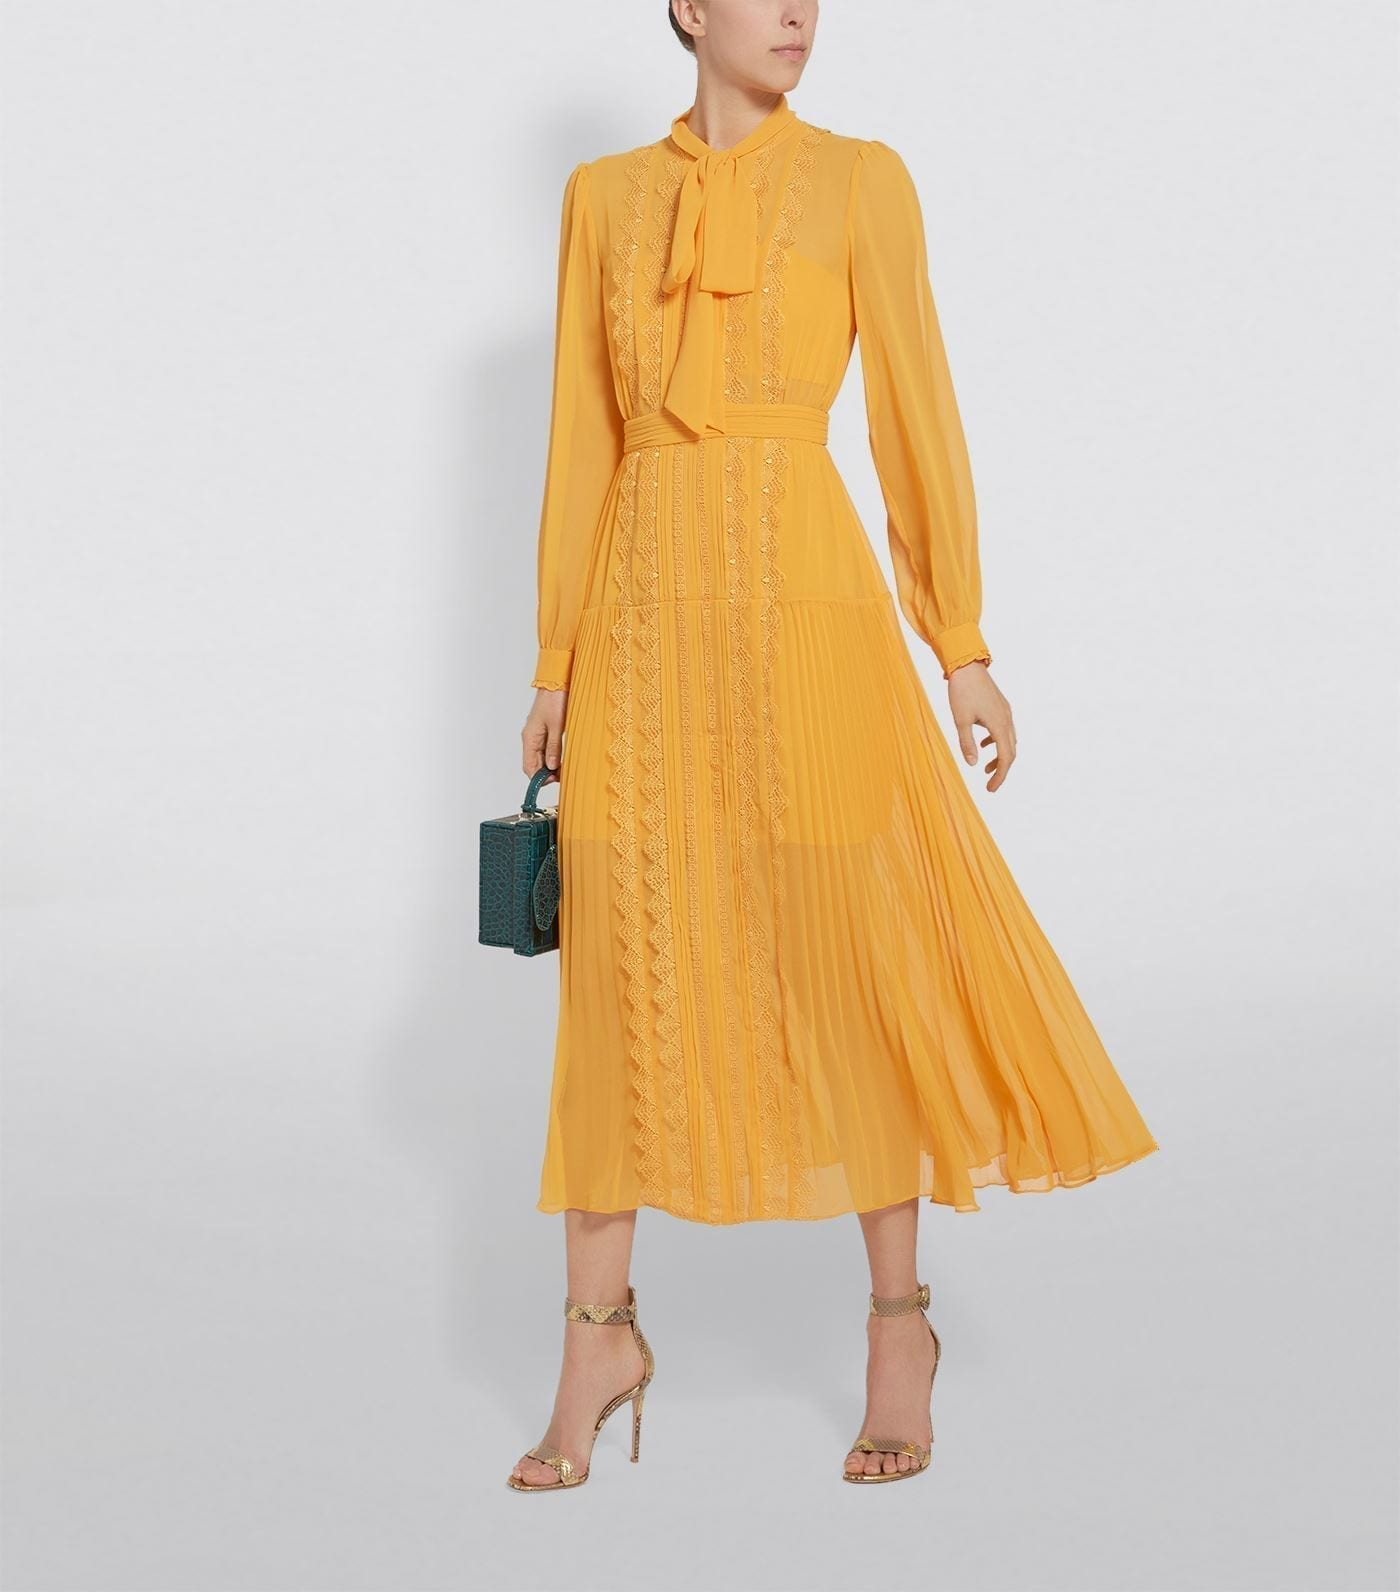 SELF-PORTRAIT Chiffon Lace Trim Midi Dress